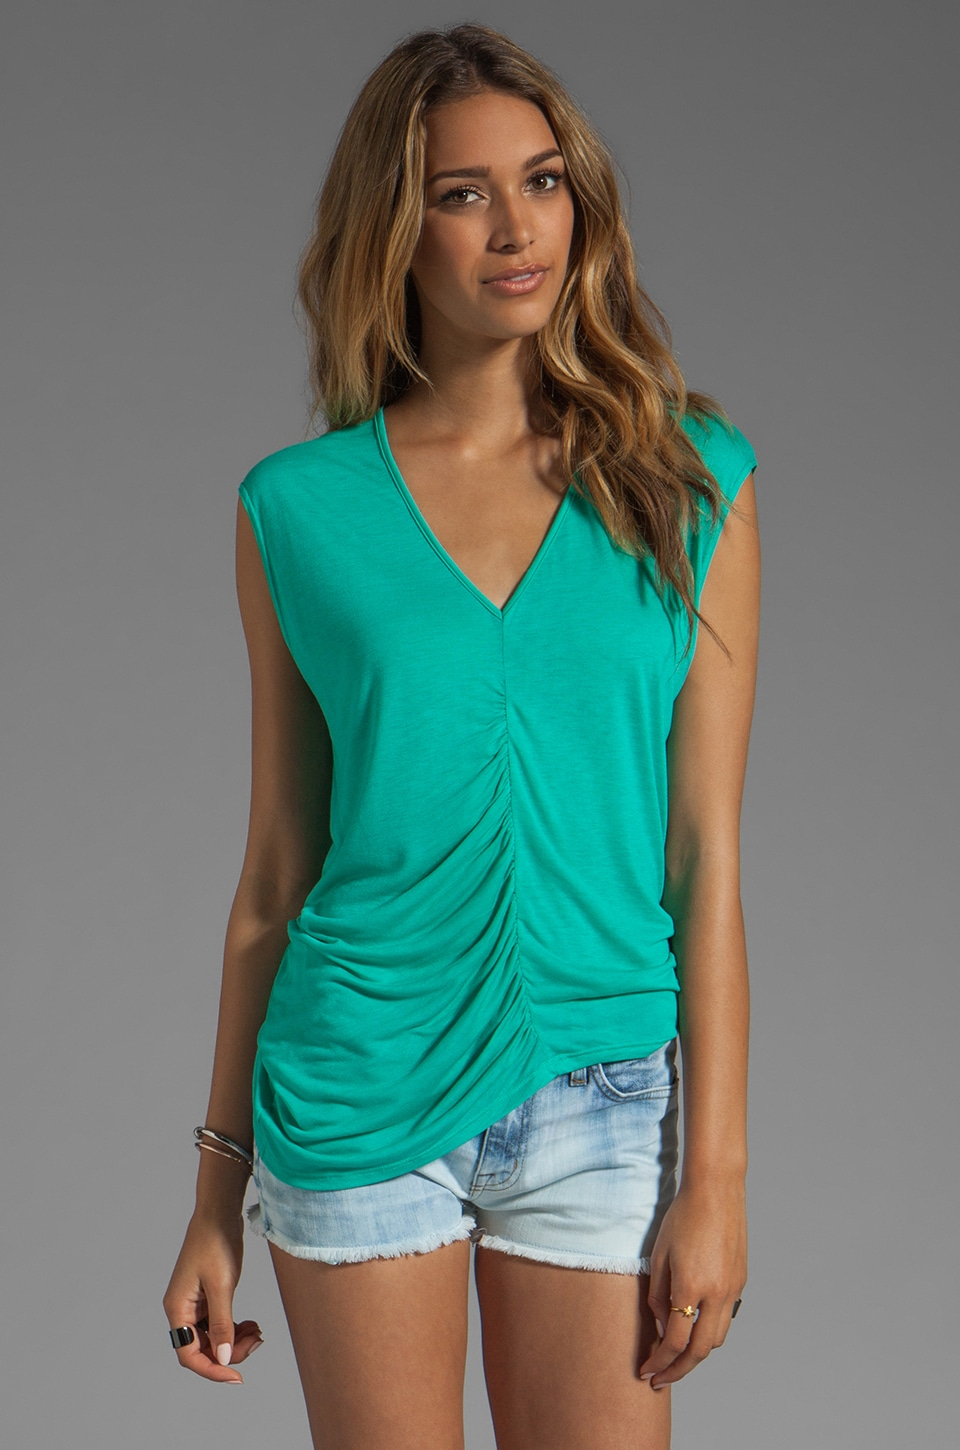 Velvet by Graham & Spencer Vanya New Fine Slinky Top in Minty